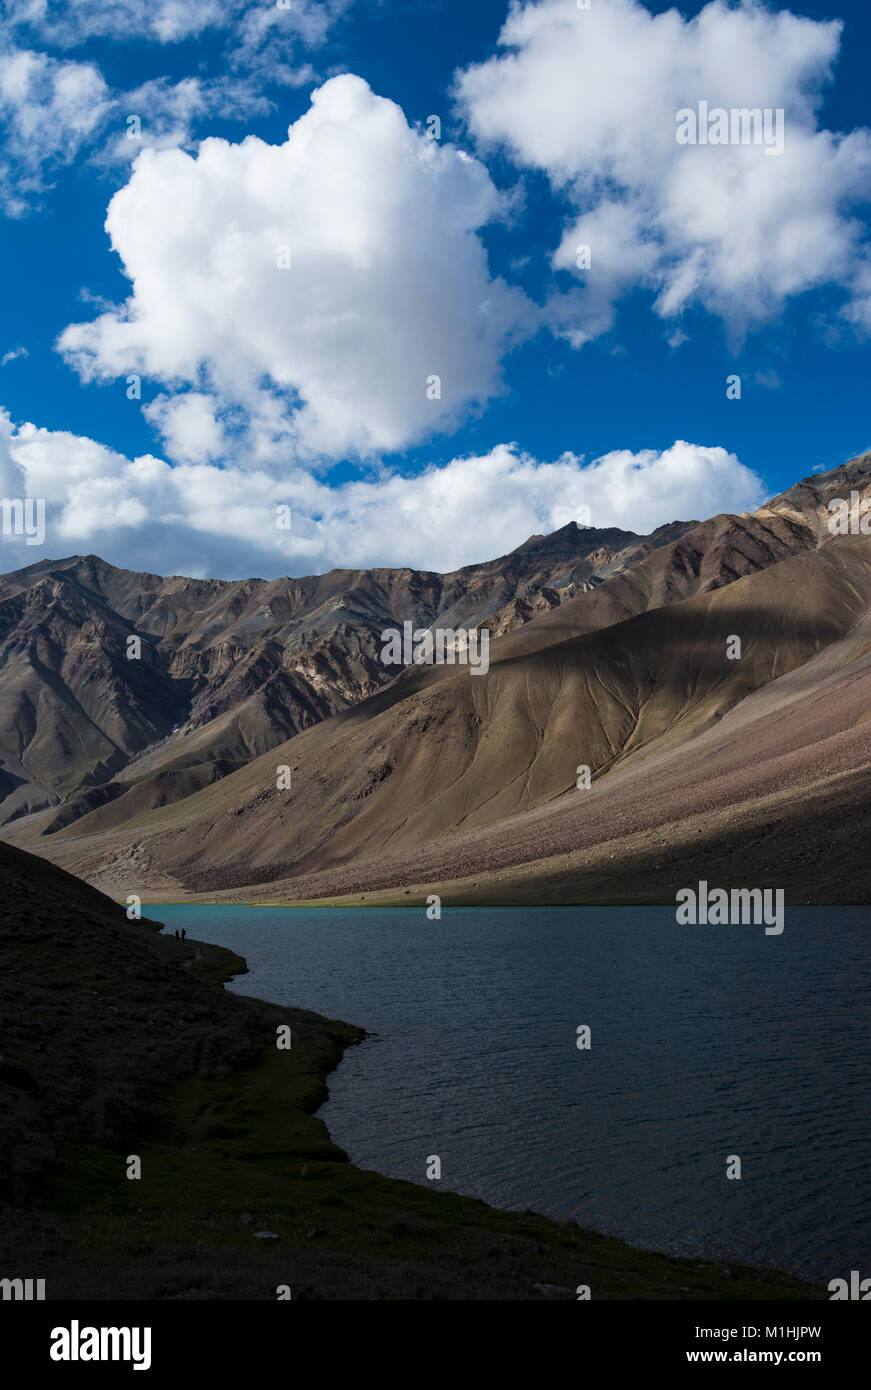 Blue sky over chandra Taal lake - Stock Image